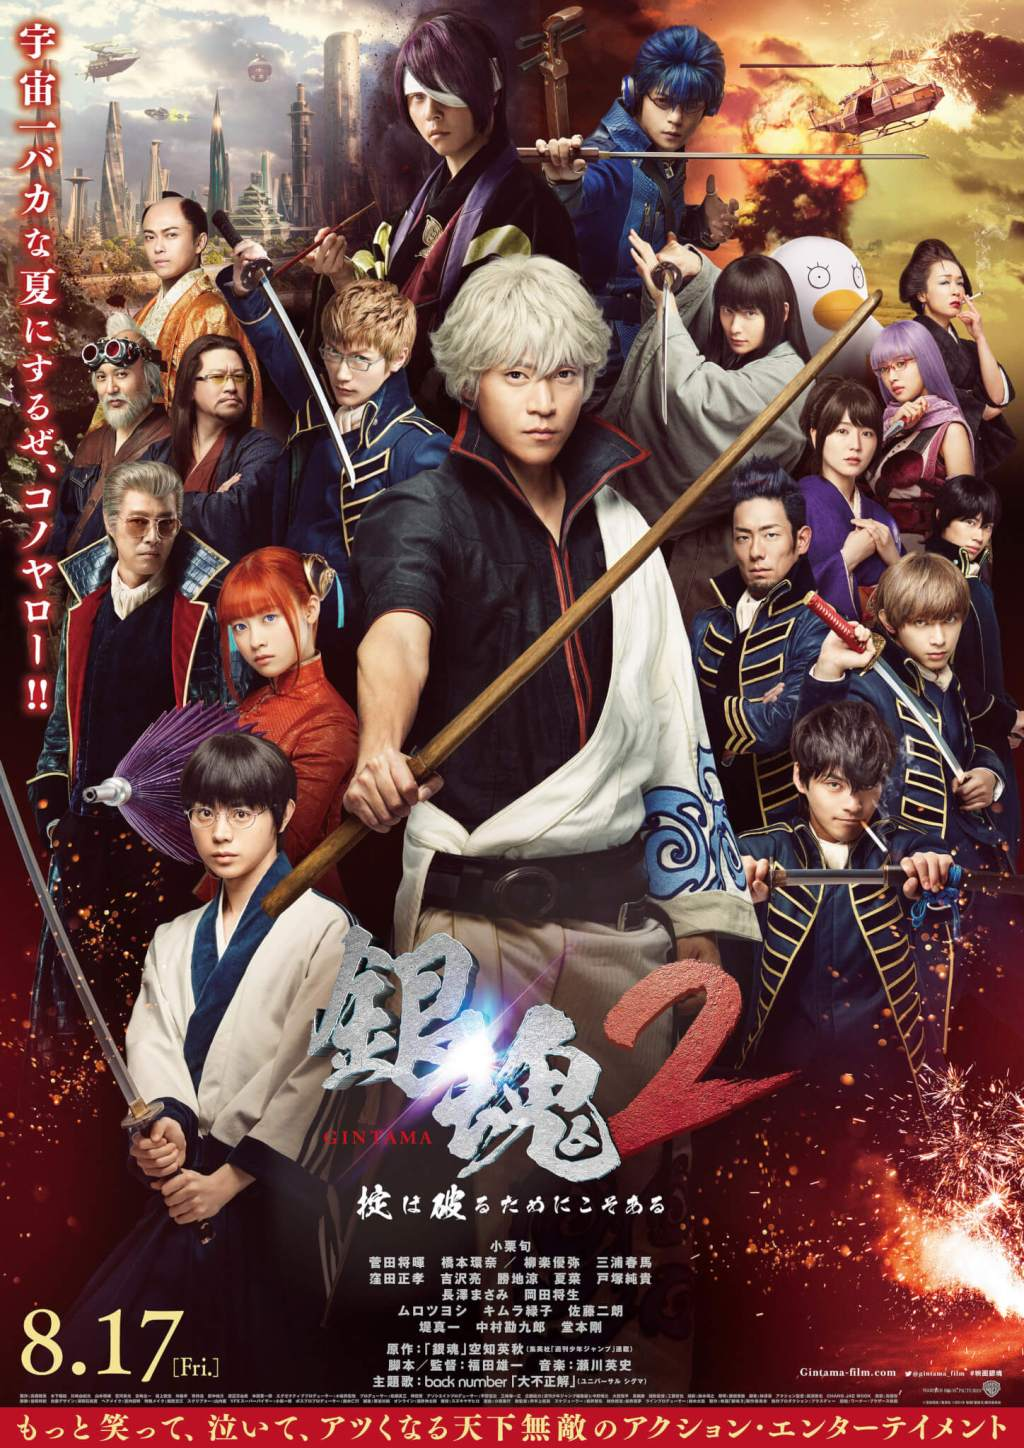 Gintama 2 live-action film unveils new visual and trailer